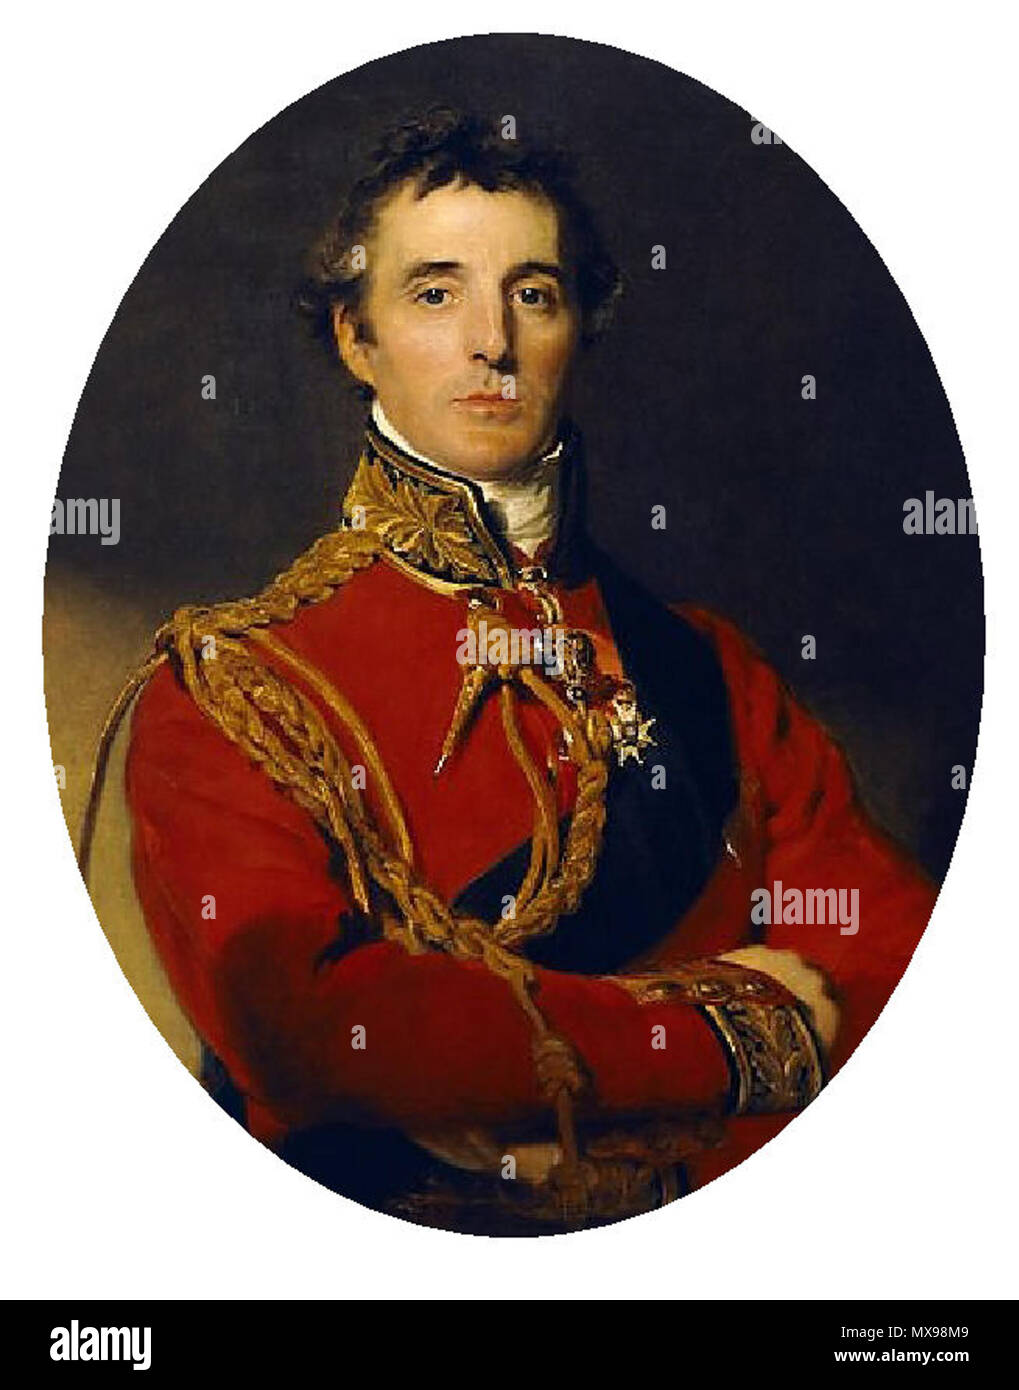 . English: Portrait . 31 January 2012. Lawrence 1815 210 First Duke of Wellington detail of a portrait - Stock Image